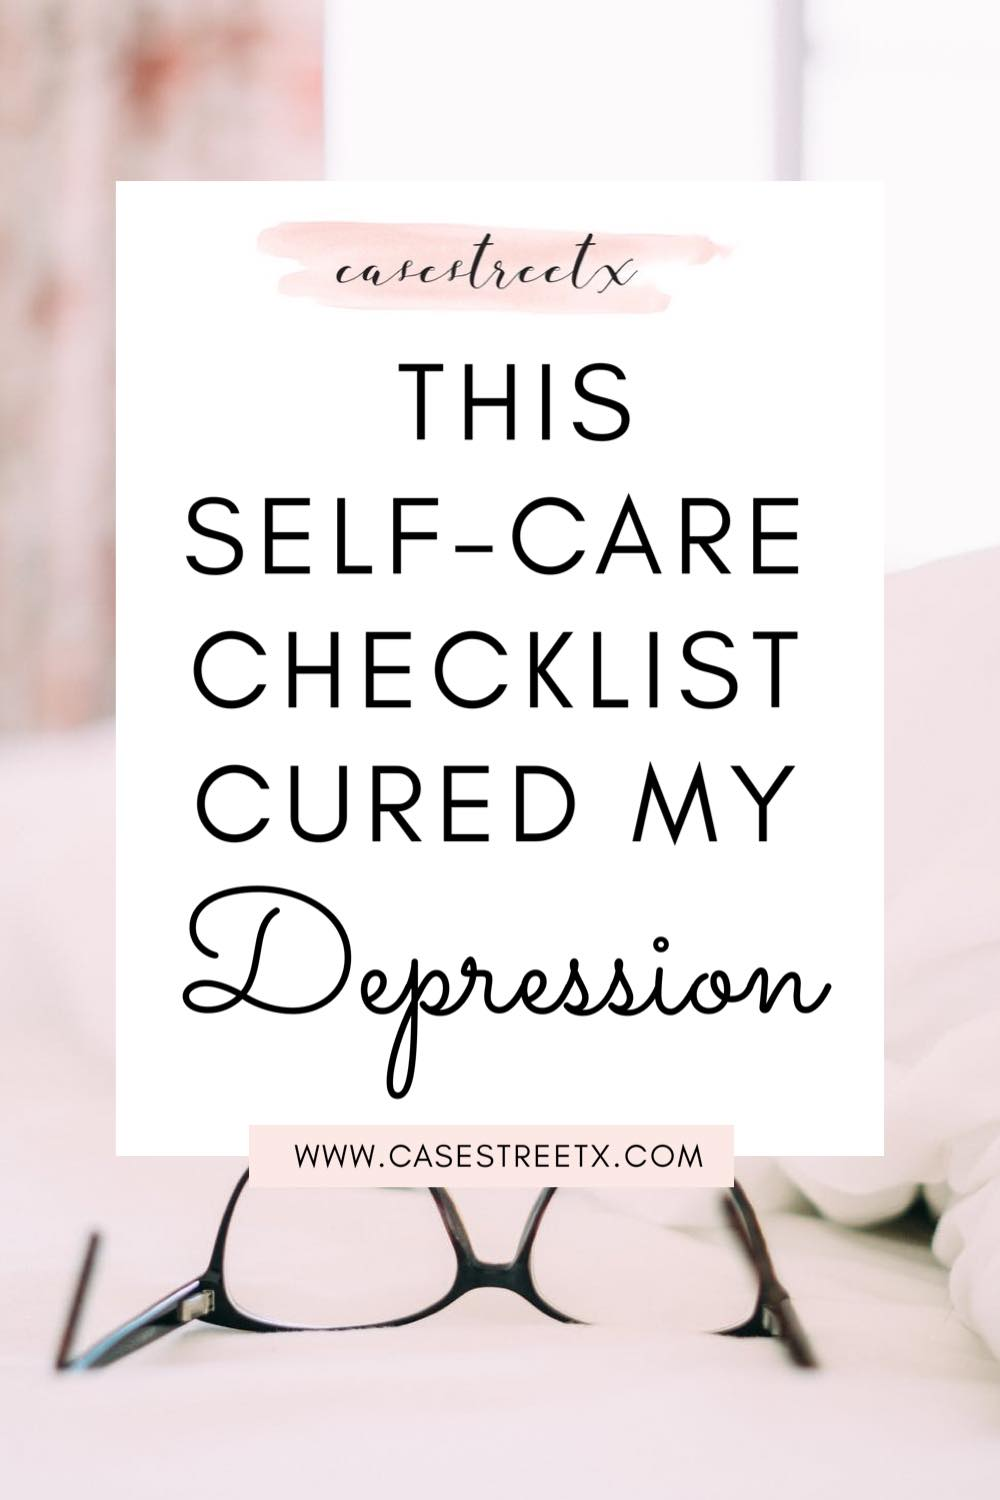 This self-care checklist cured my depression